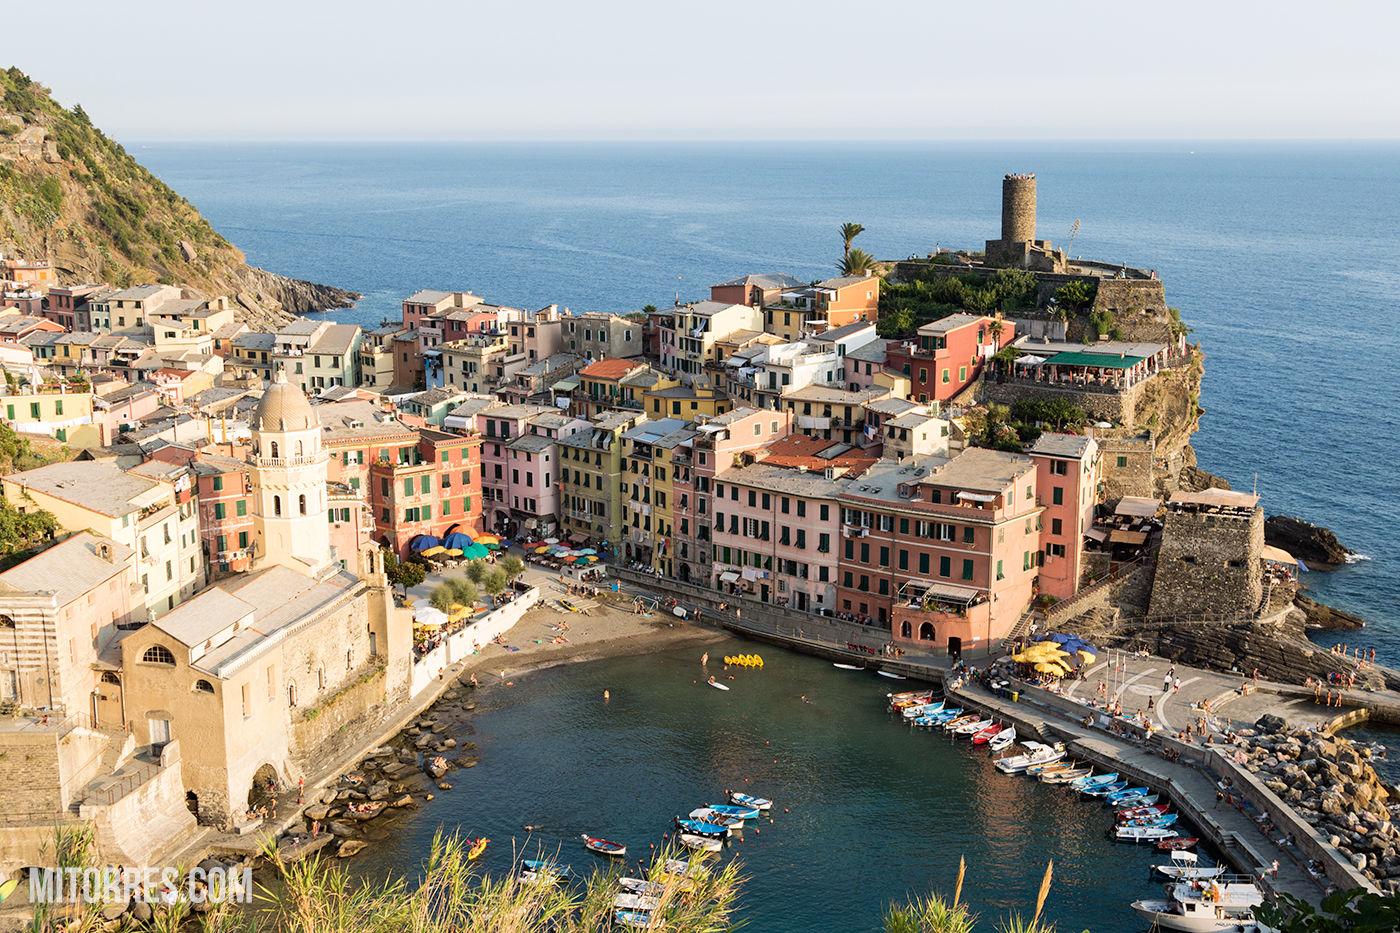 Summer time in Vernazza, Cinque Terre, Italy. Photo: Marlon I. Torres